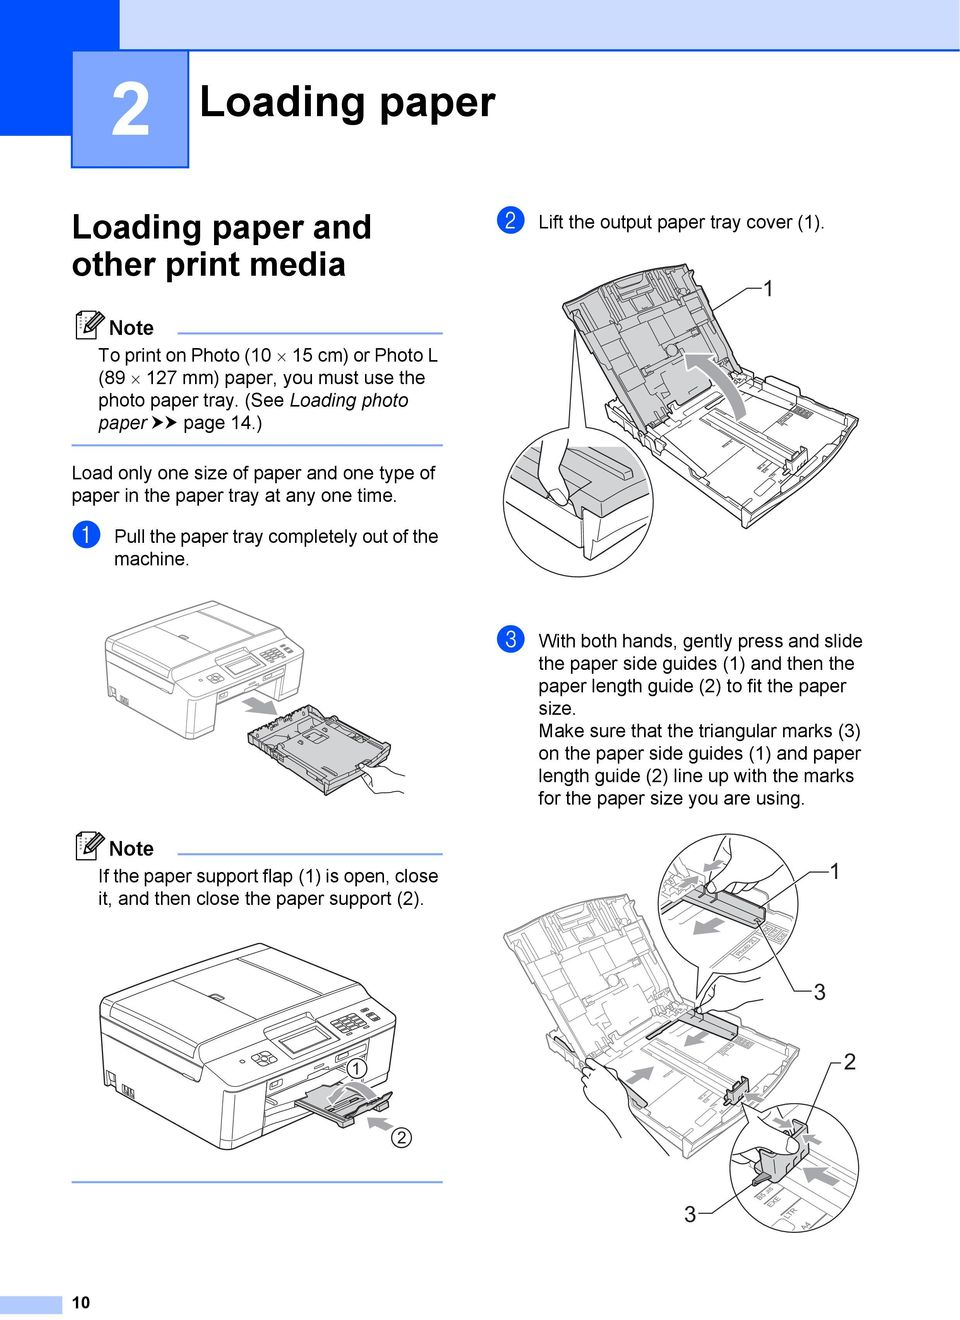 ) Load only one size of paper and one type of paper in the paper tray at any one time. a Pull the paper tray completely out of the machine.